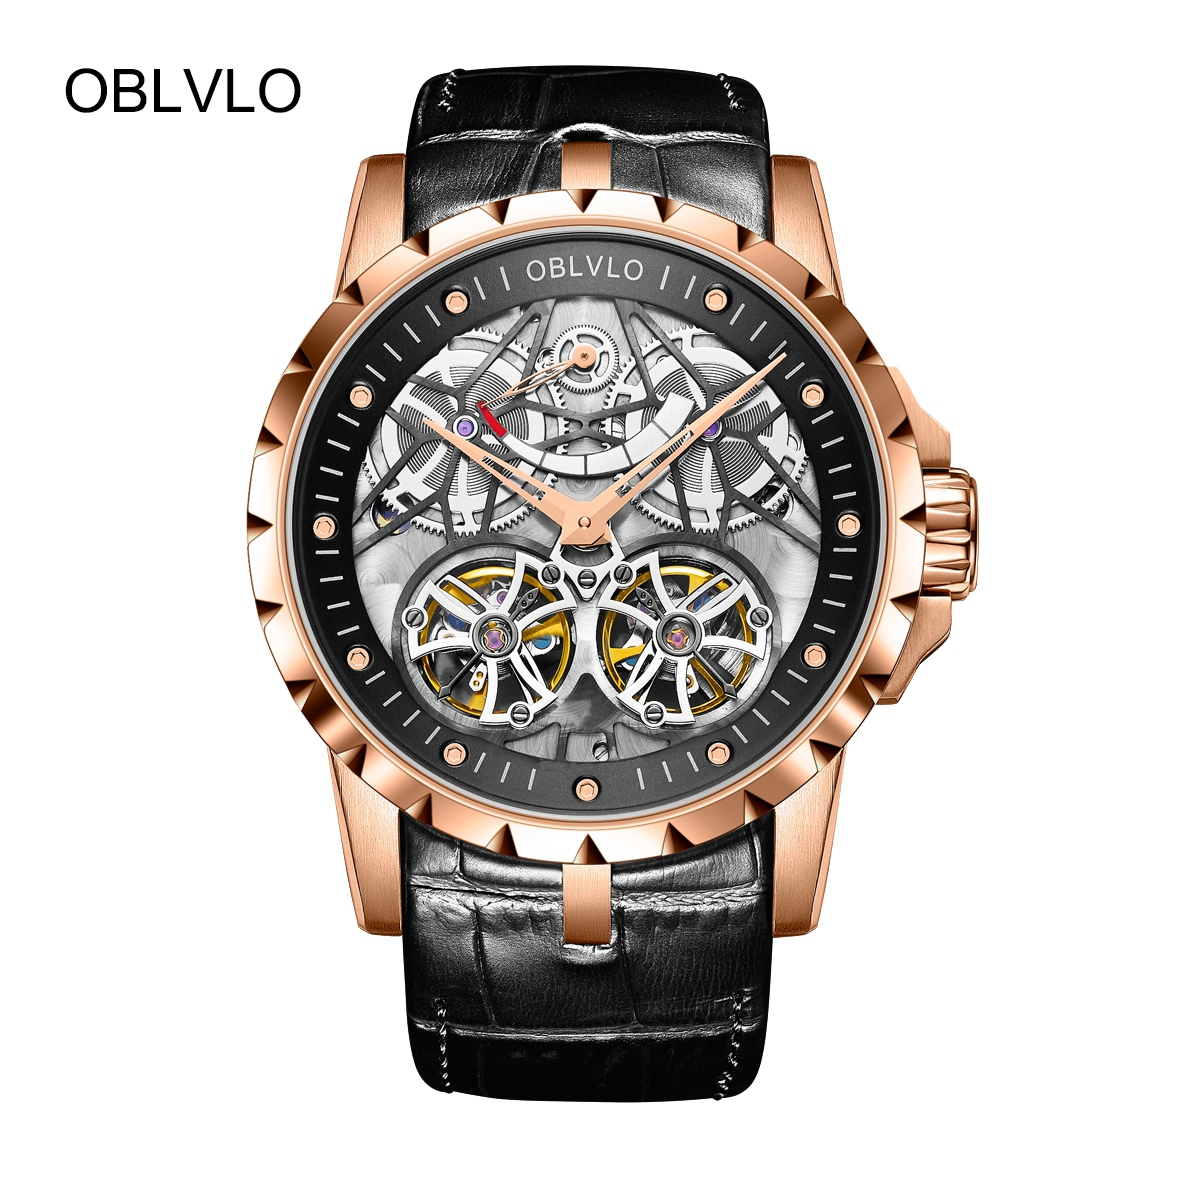 OBLVLO Fashion Tourbillon Watches Transparent Skeleton Leather Strap Automatic Watch For Men OBL3609RSBB